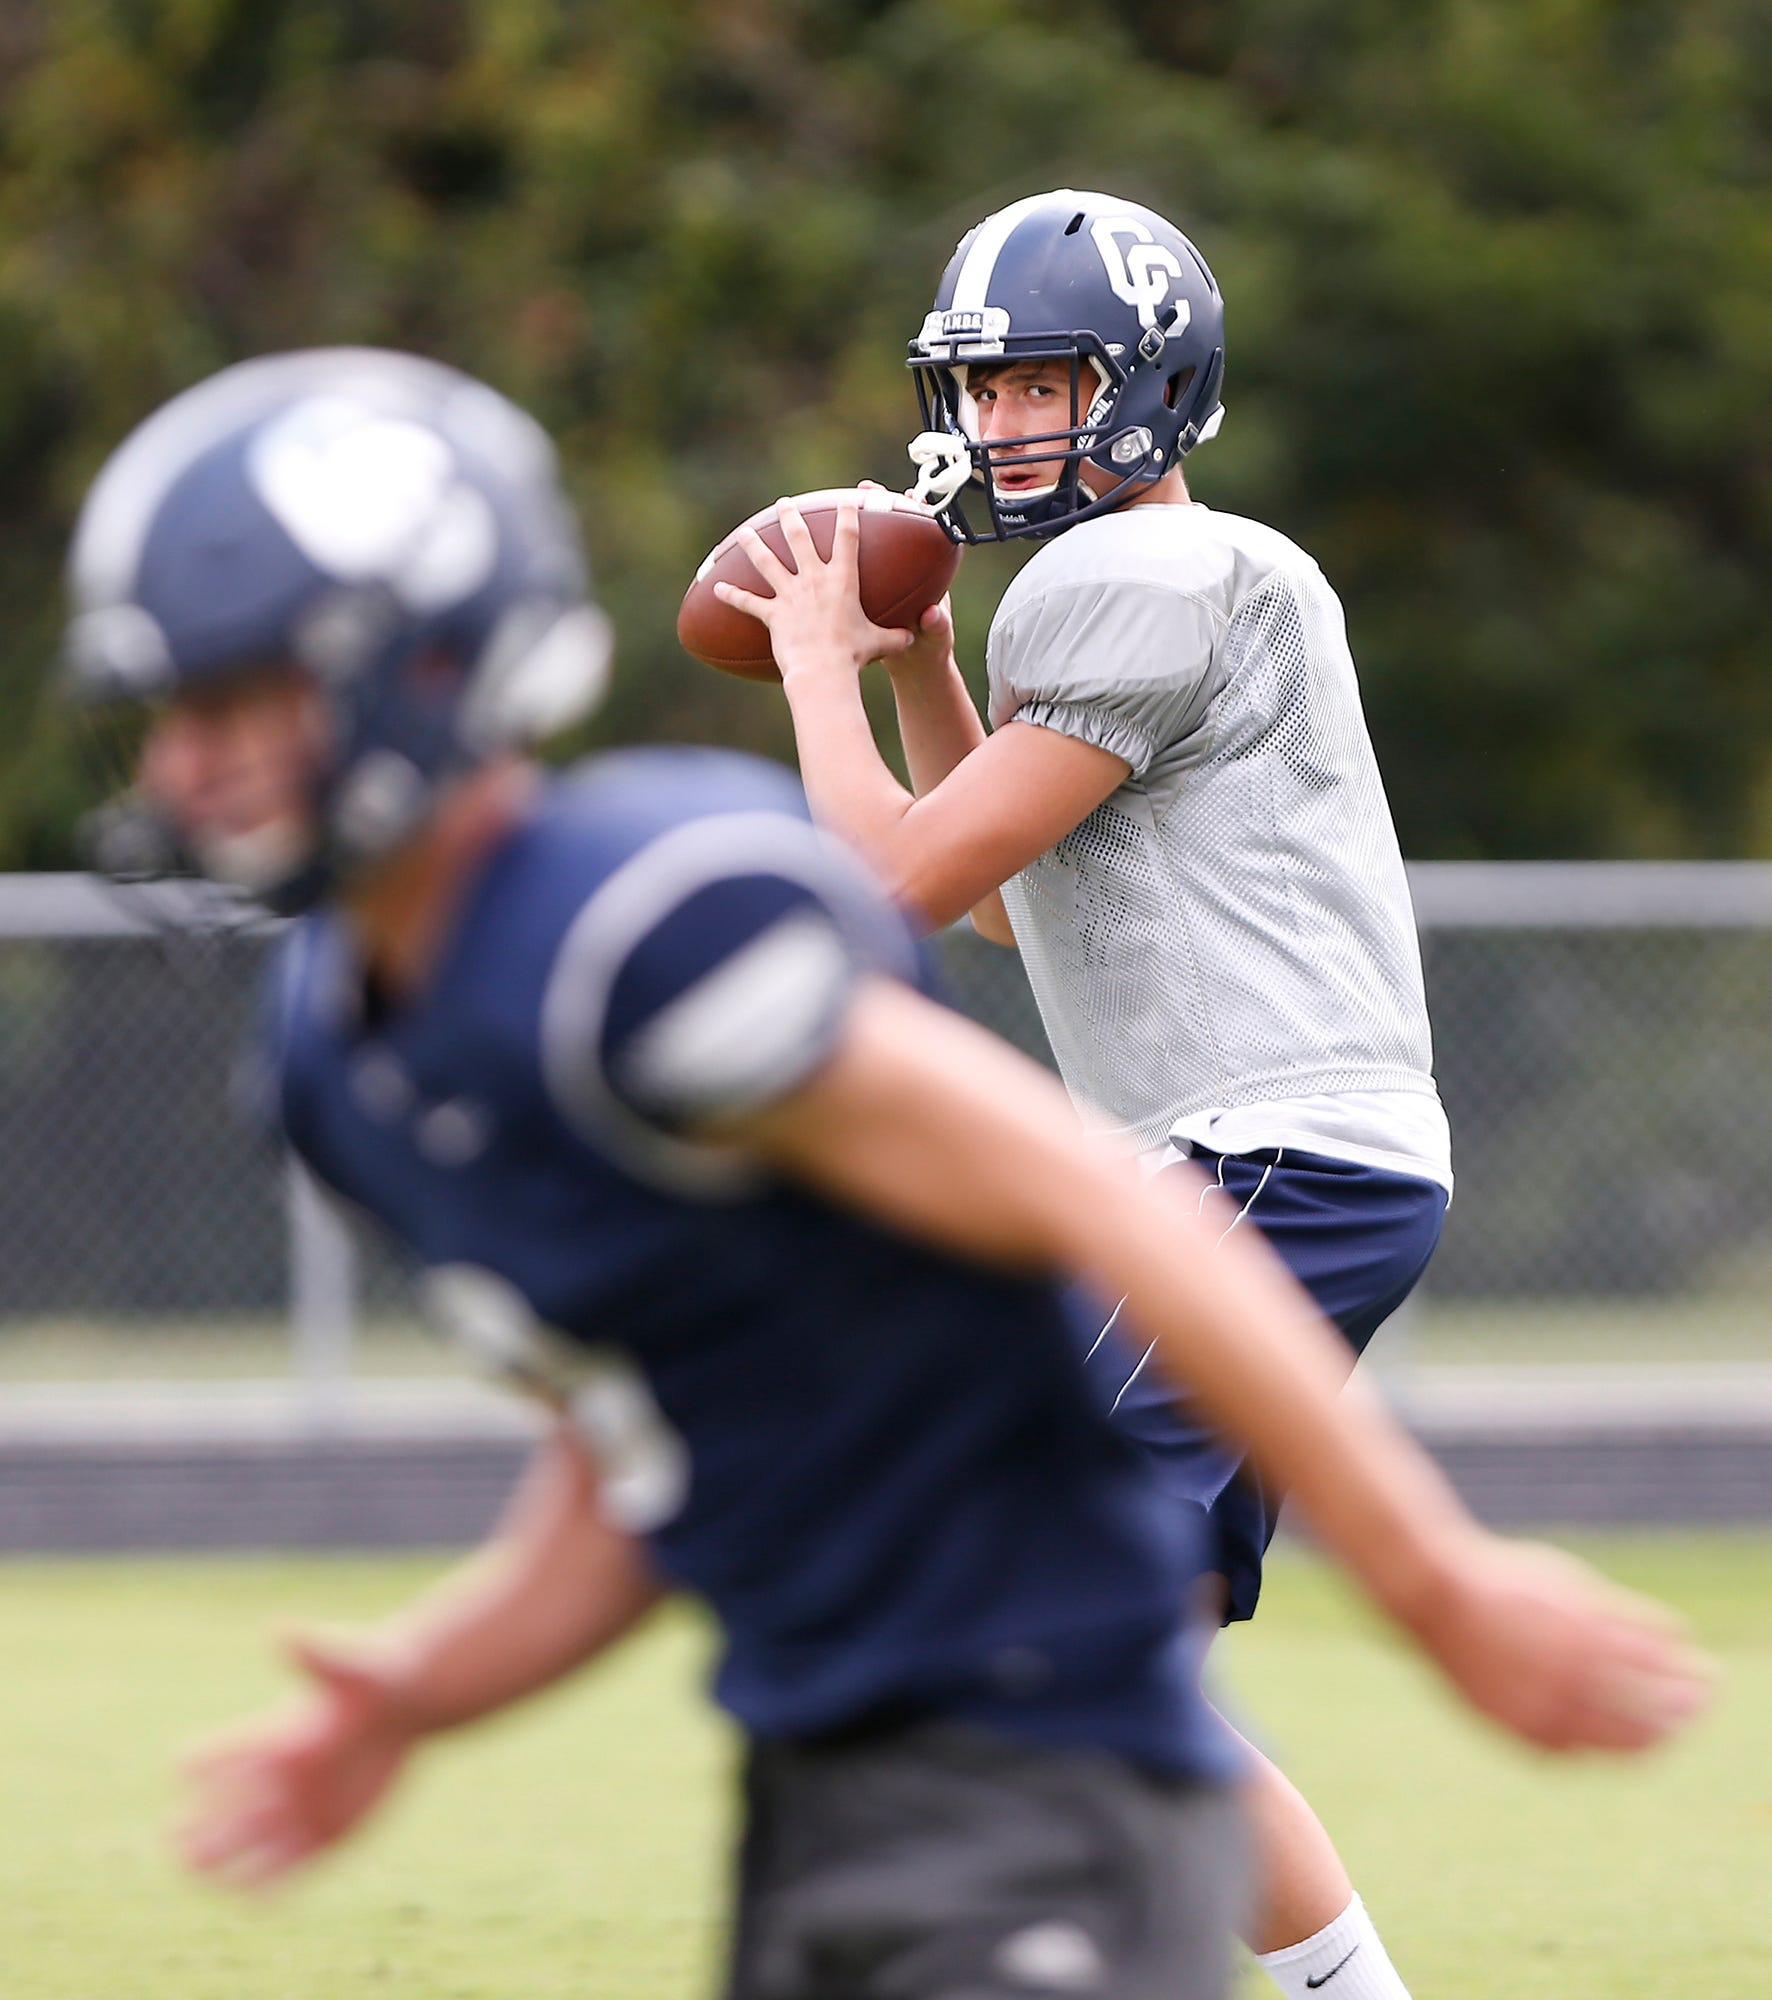 Clark Barrett gets set for a pass during football practice Tuesday at Central Catholic.